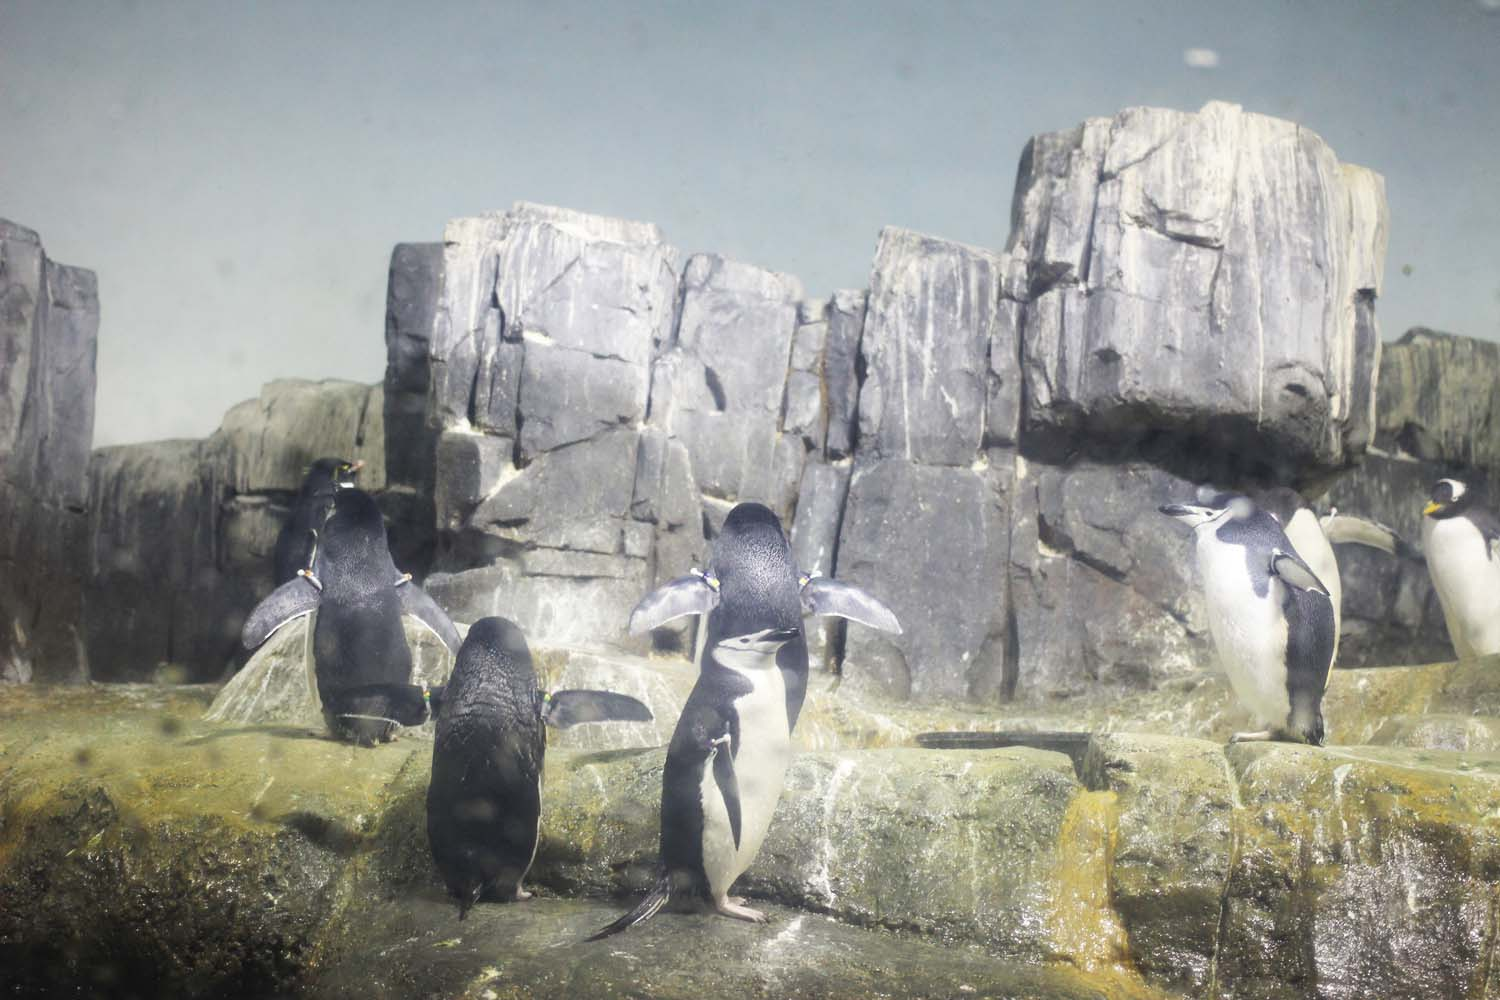 Penguins at Central Park Zoo; Image:  Laura Messersmith